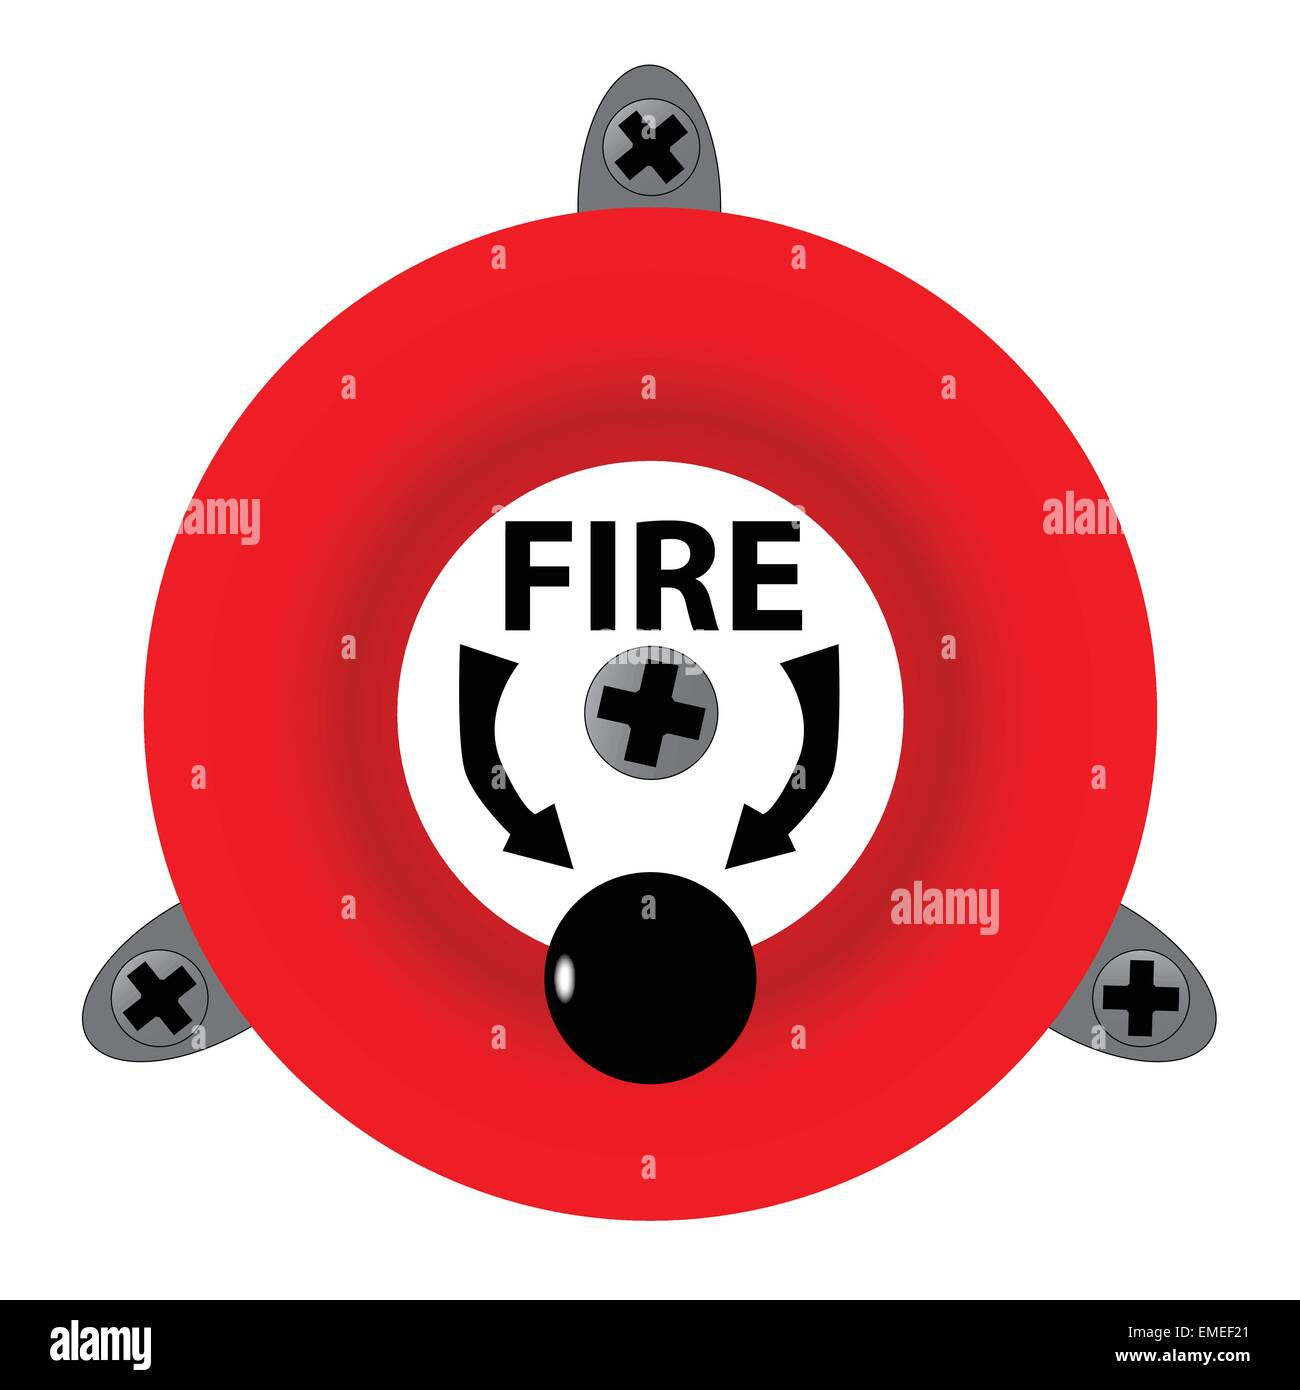 Fire Bell - Stock Image